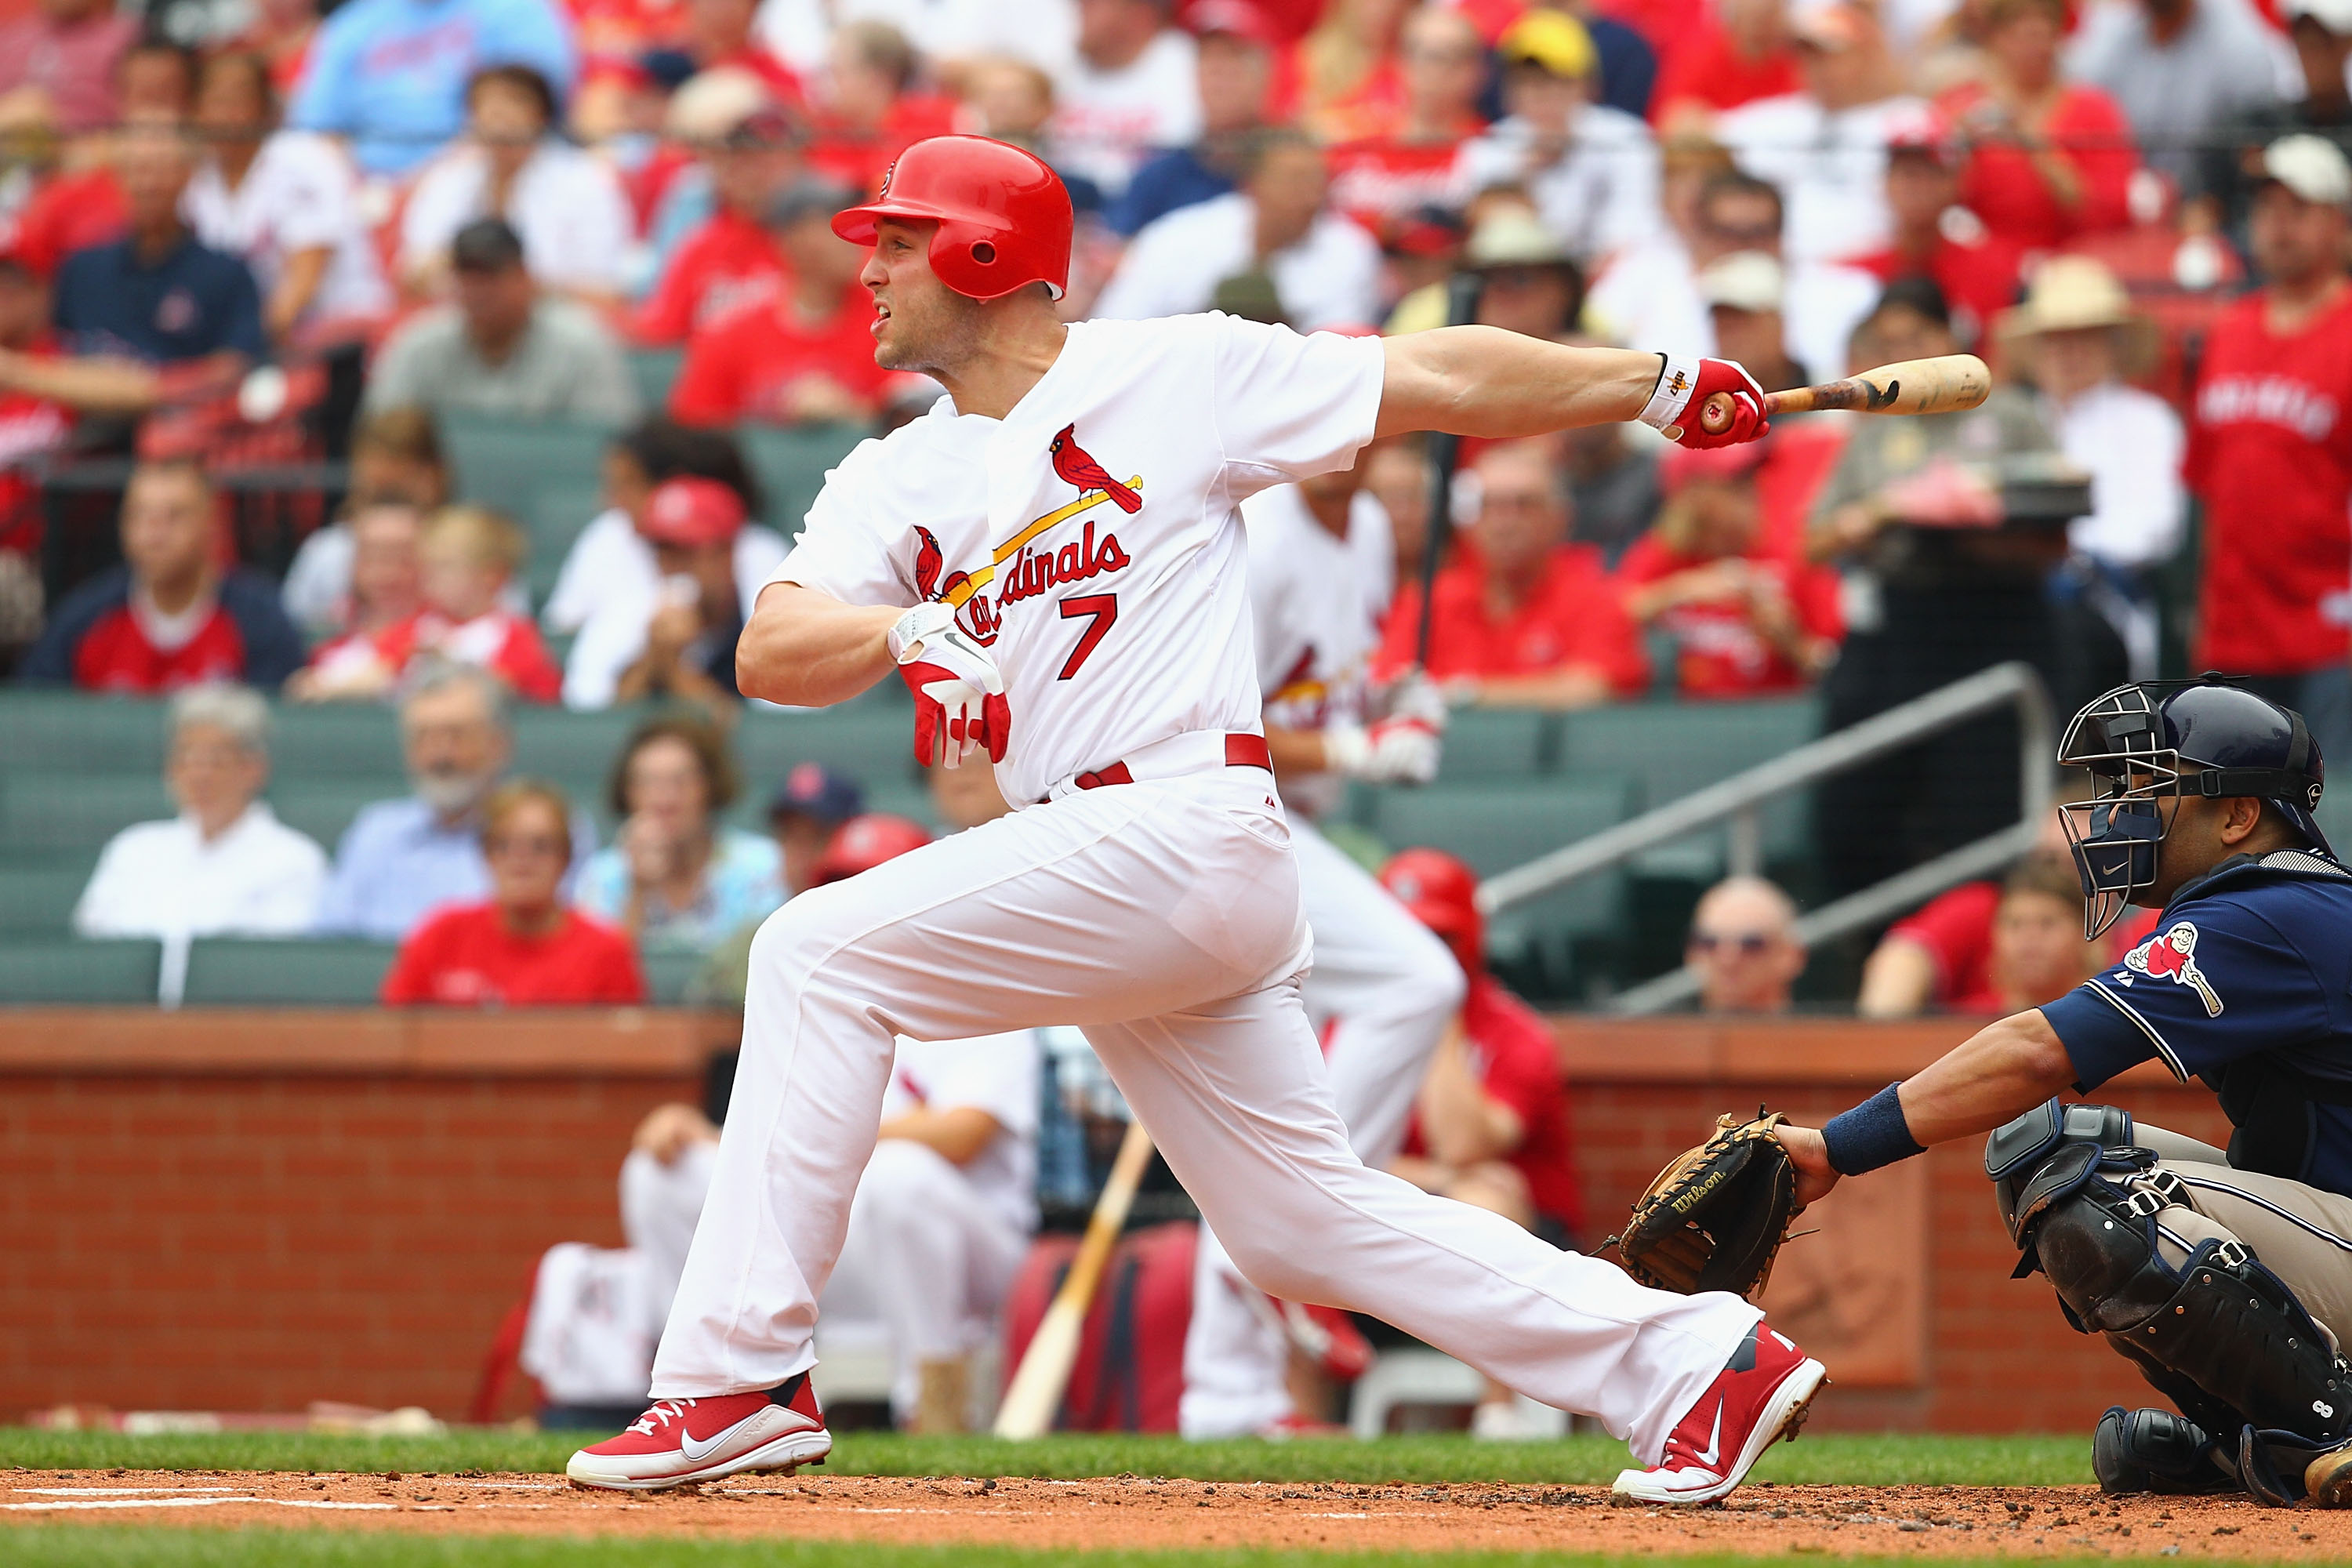 ST. LOUIS - SEPTEMBER 19: Matt Holliday #7 of the St. Louis Cardinals hits an RBI single against the San Diego Padres at Busch Stadium on September 19, 2010 in St. Louis, Missouri.  The Cardinals beat the Padres 4-1.  (Photo by Dilip Vishwanat/Getty Image